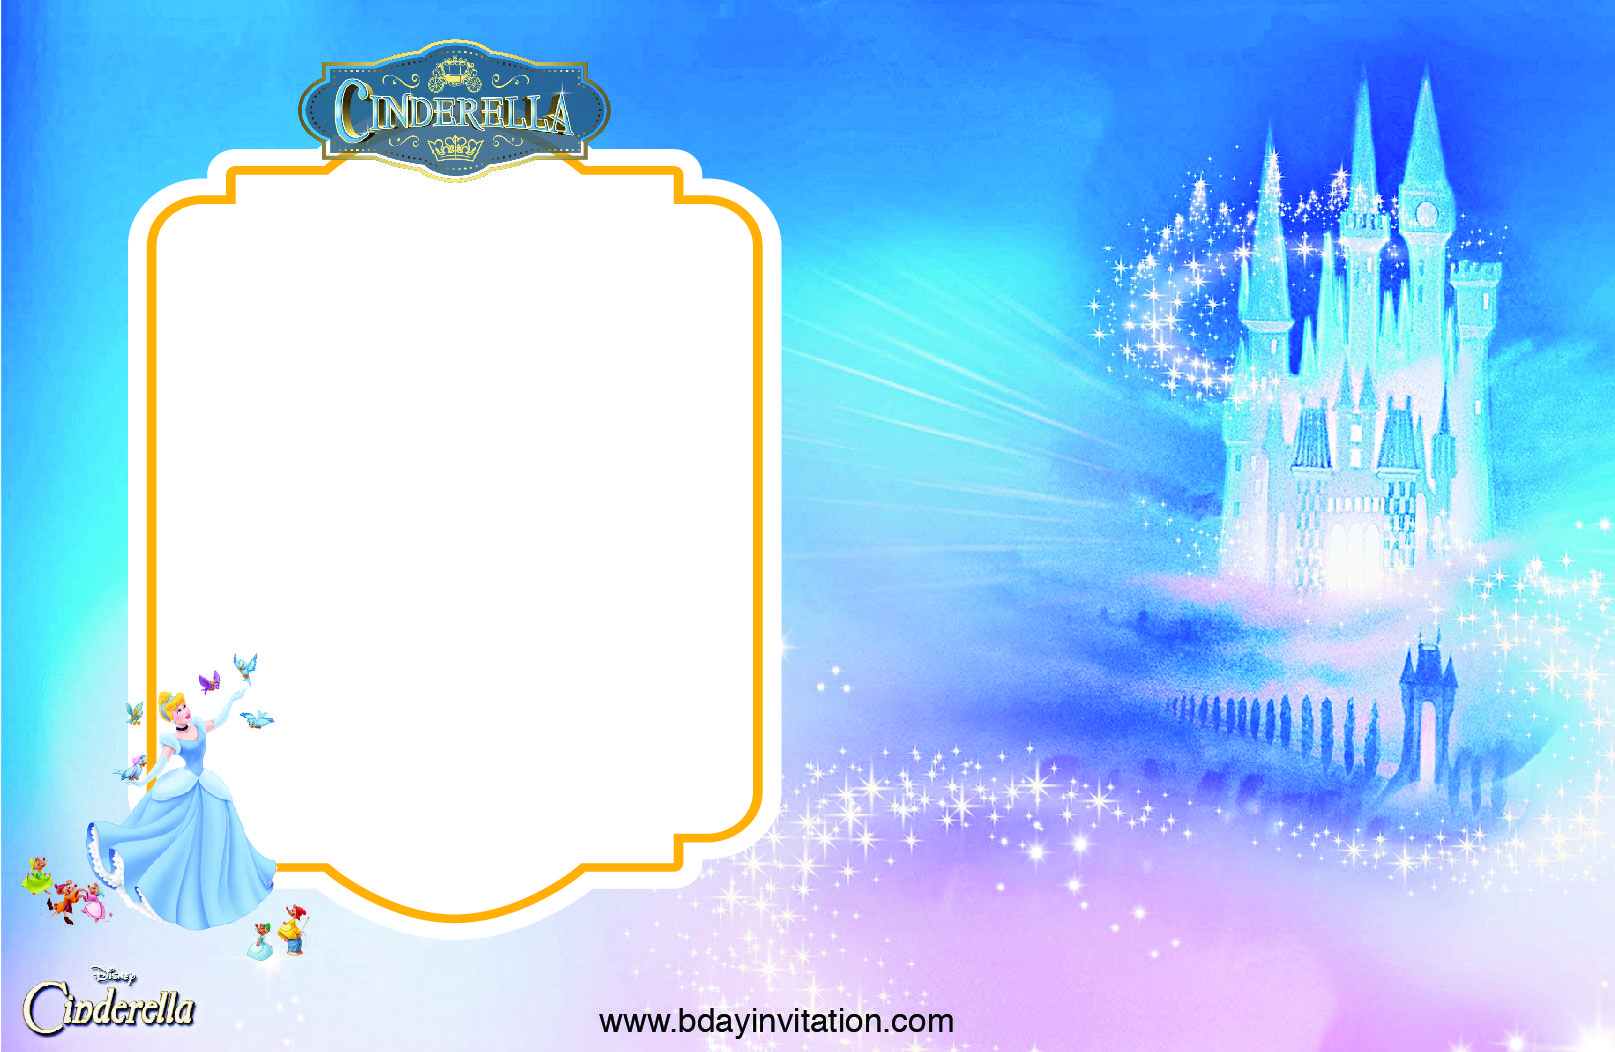 Cinderella Invitation Template Free